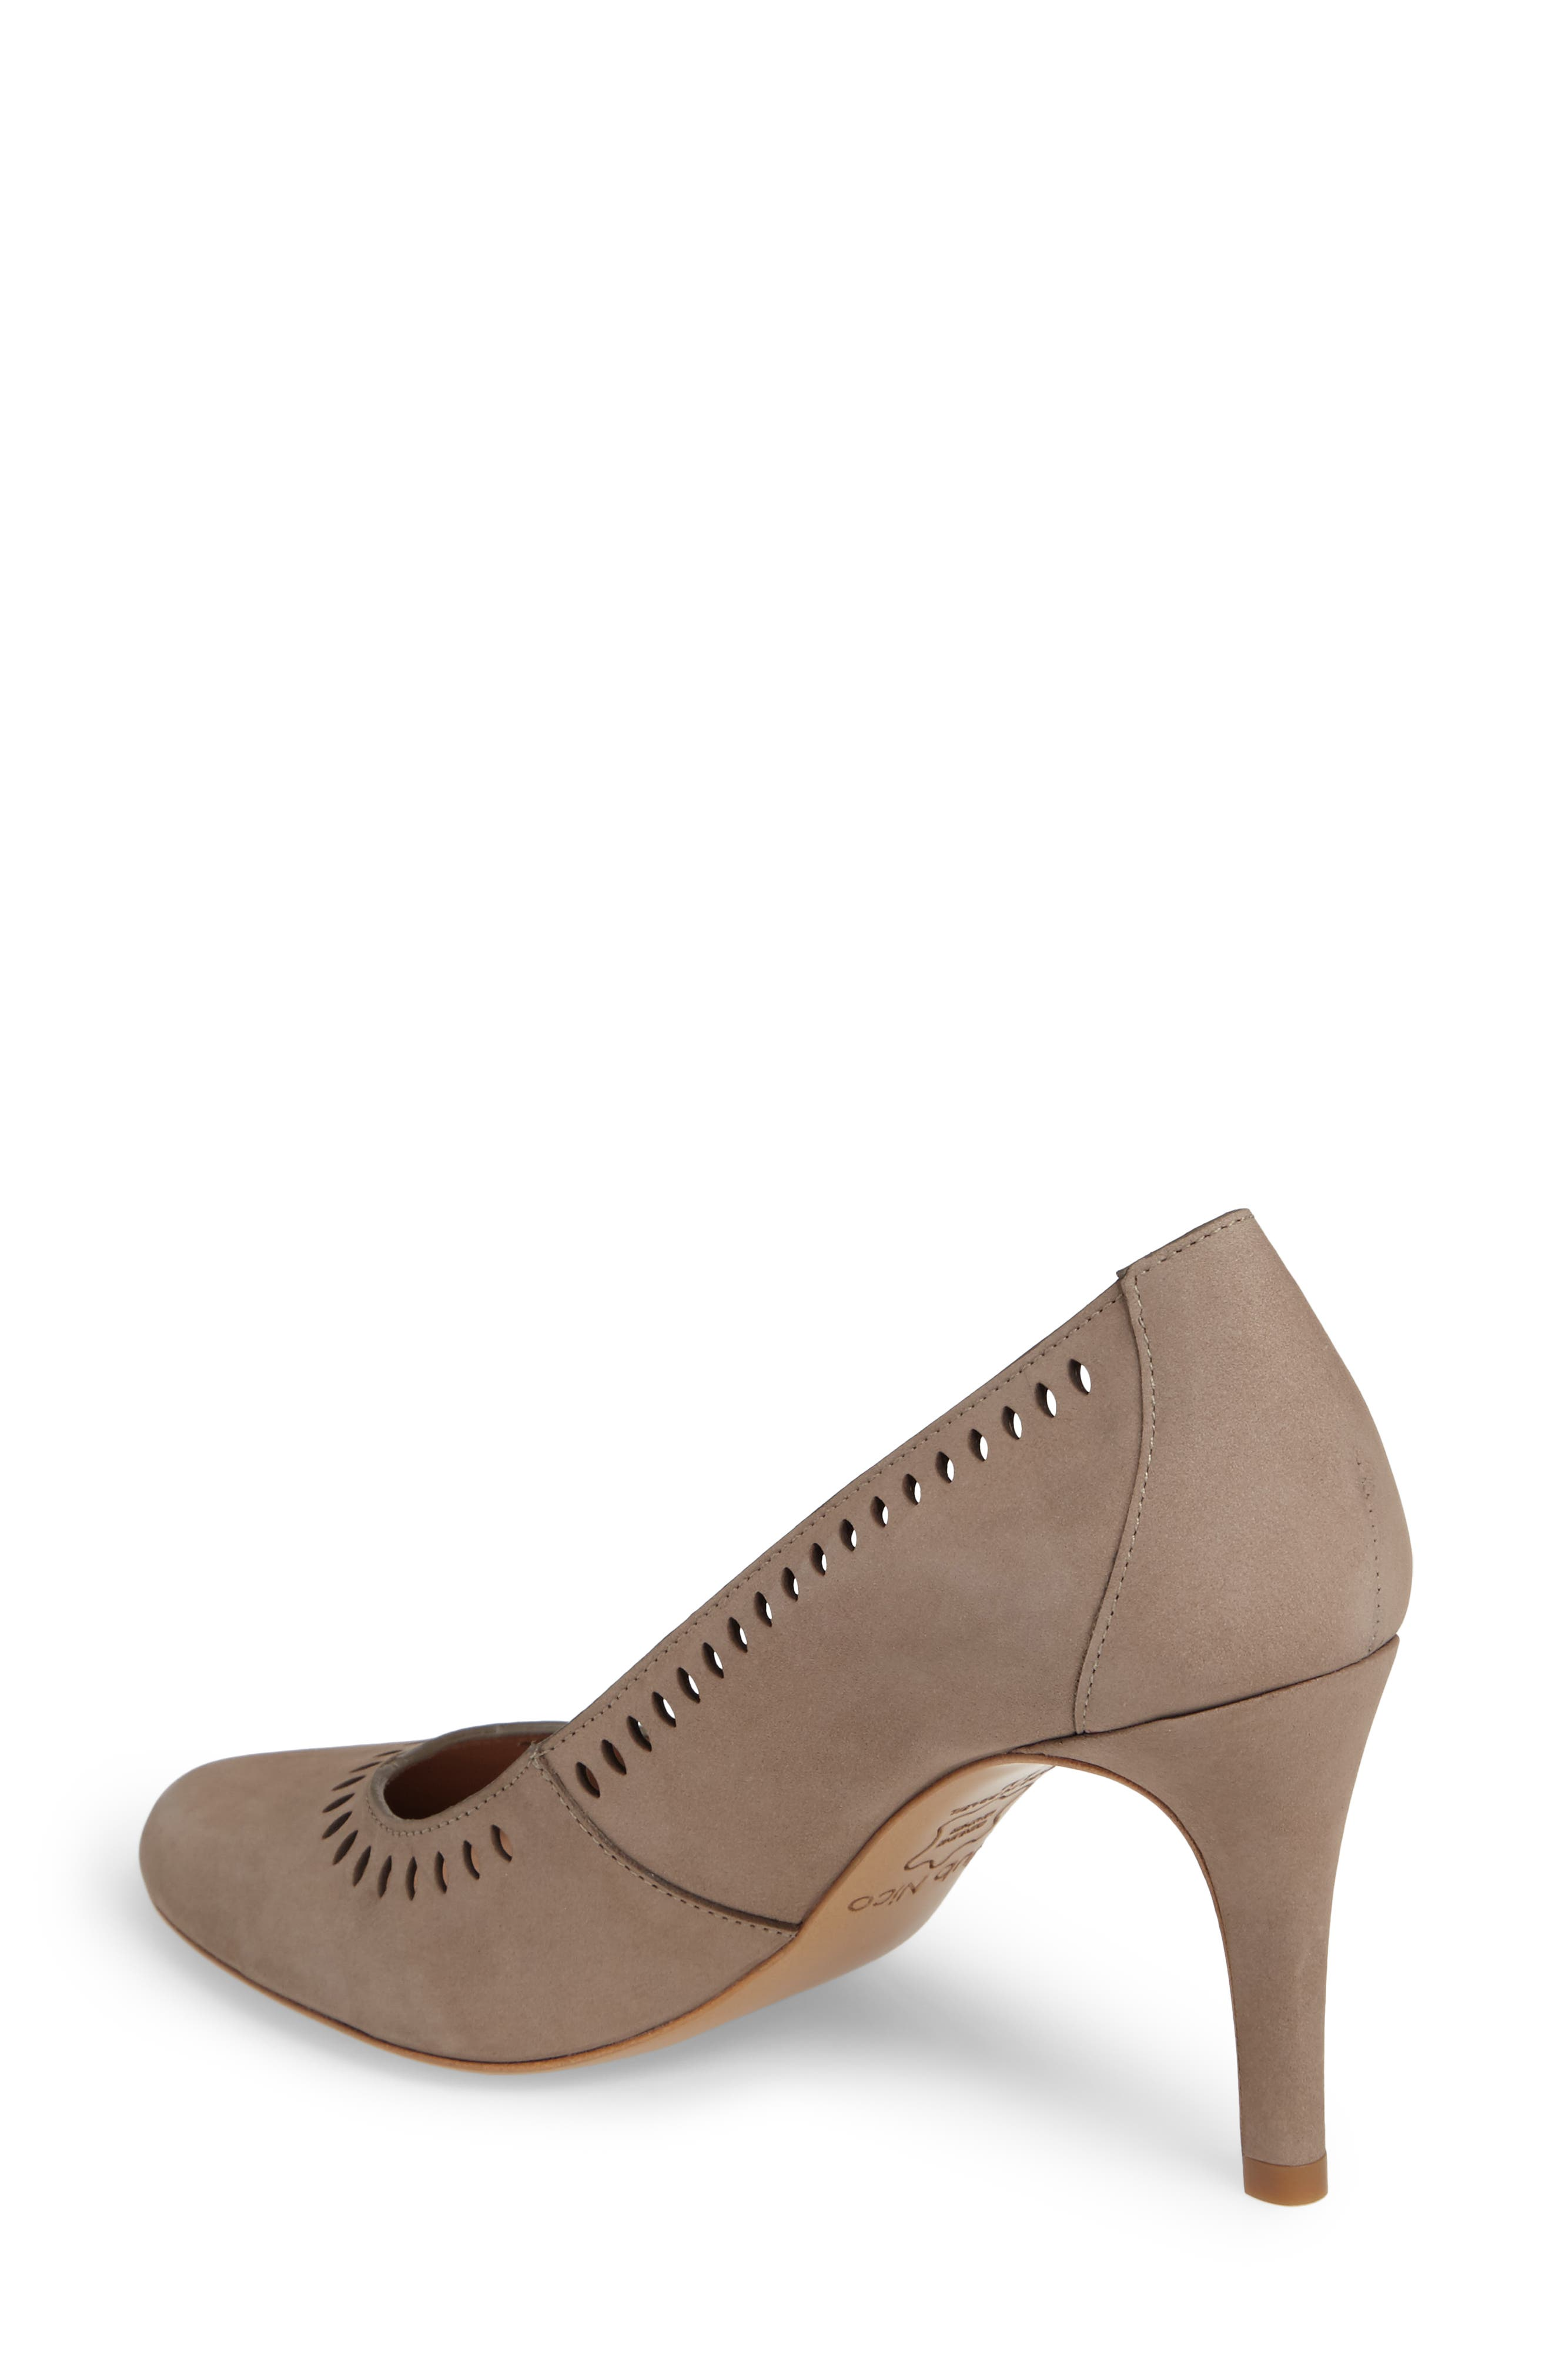 Beleza Perforated Pump,                             Alternate thumbnail 2, color,                             Taupe Nubuck Leather